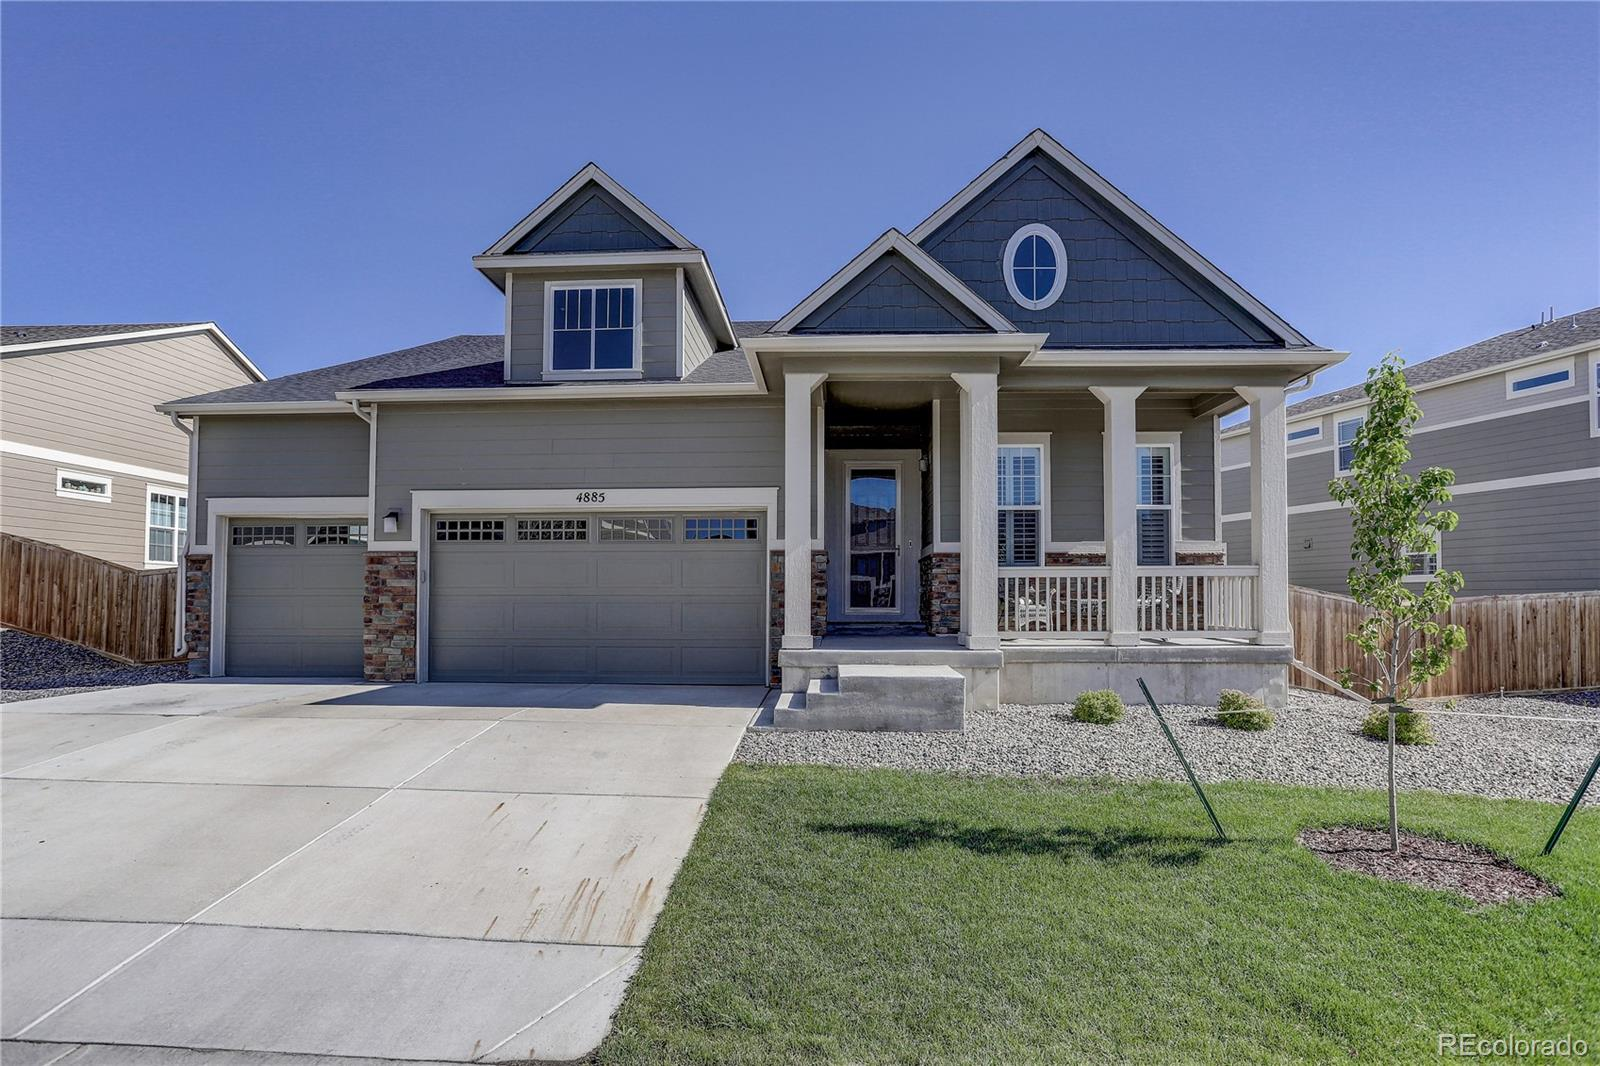 4885 E 143rd Avenue Property Photo - Thornton, CO real estate listing